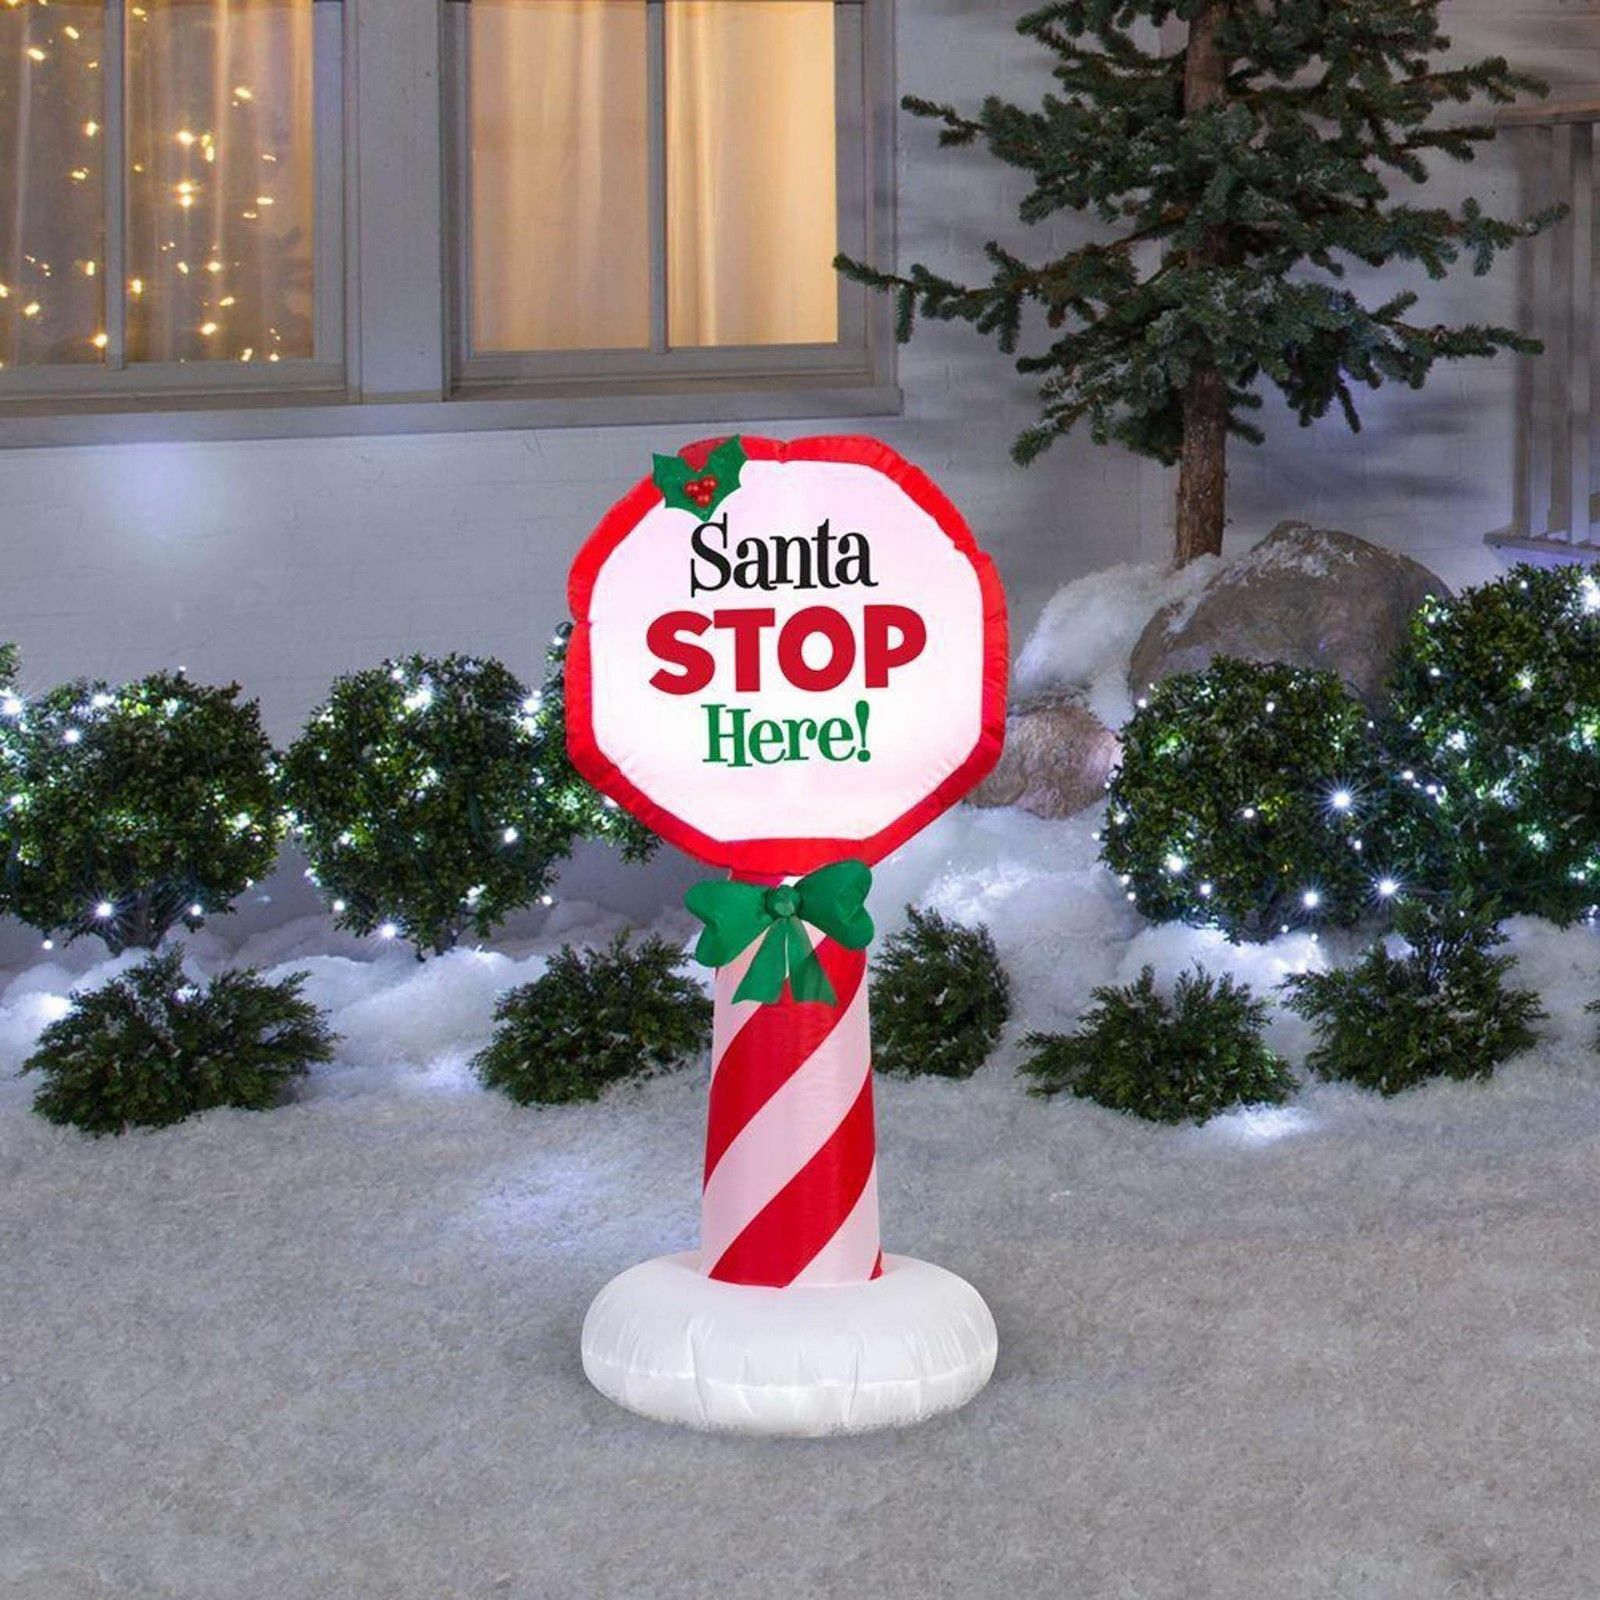 Accents Holiday Outdoor Lighted Christmas Inflatable Santa Stop Open Box